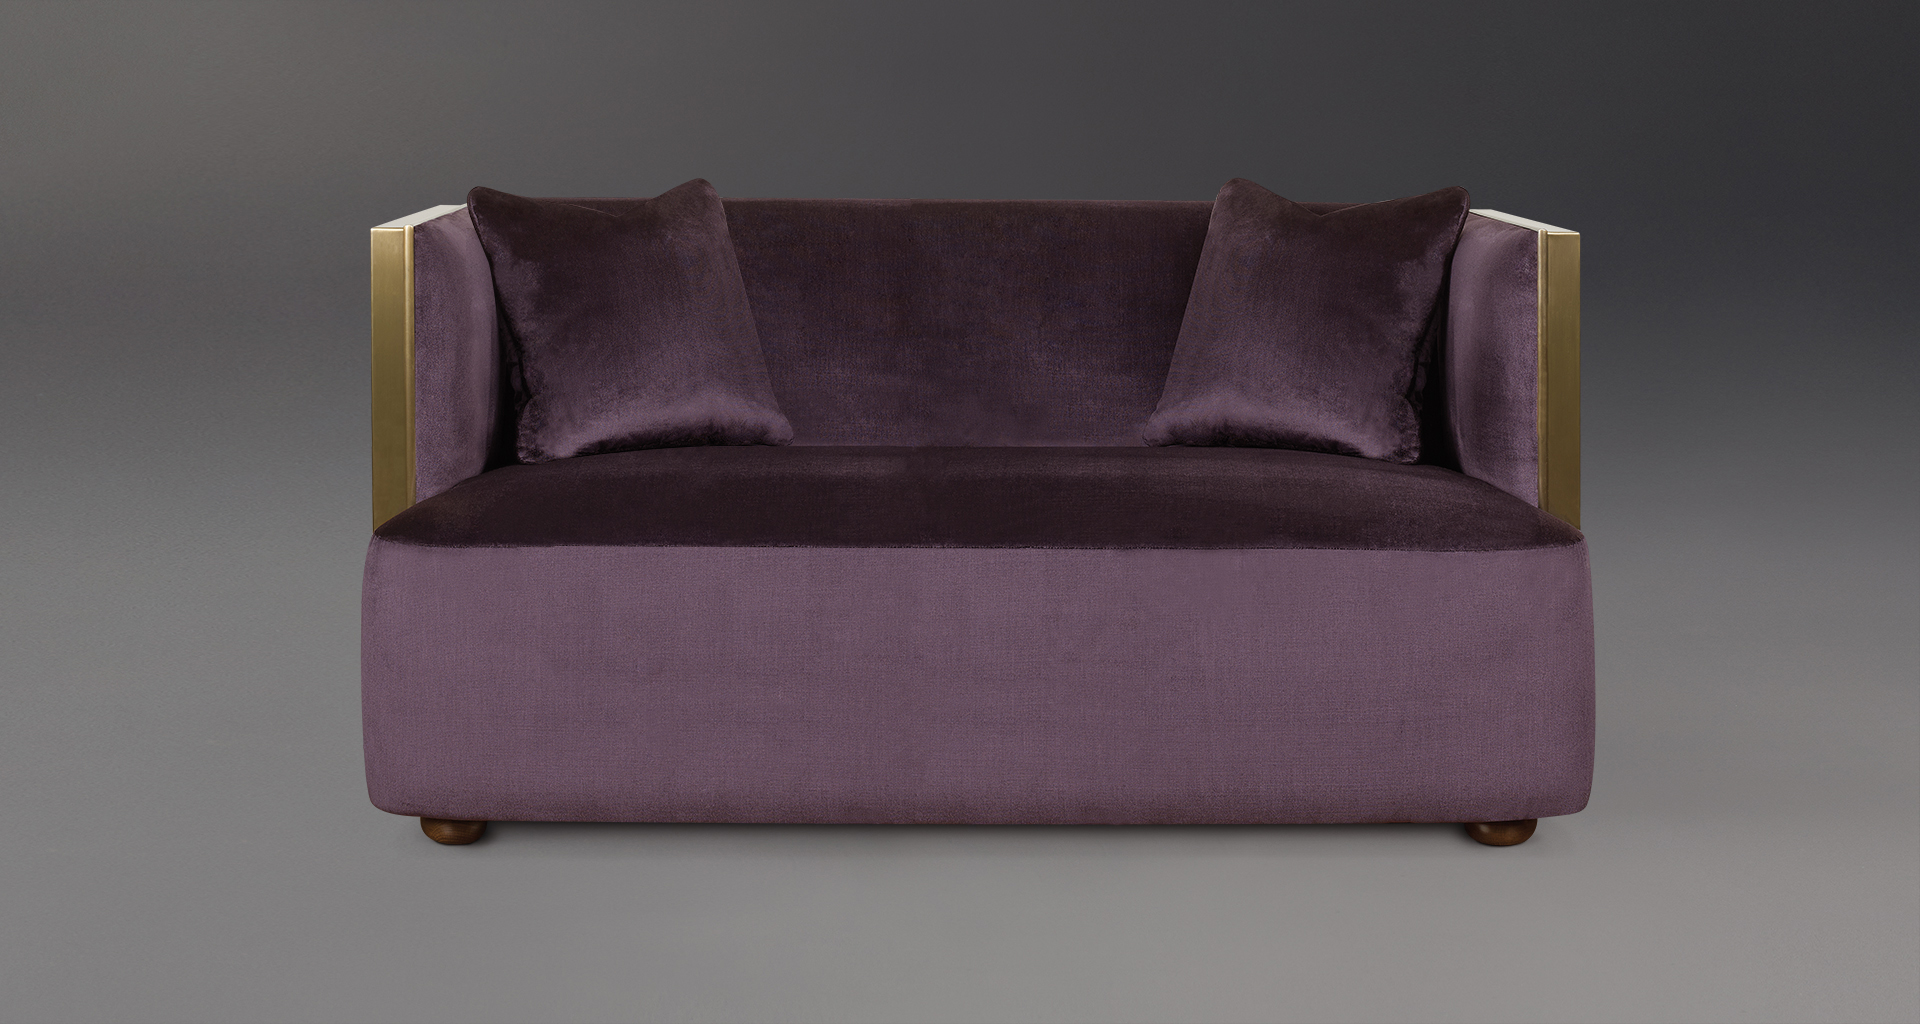 Boccaccio is a bronze sofa covered in fabric, from Promemoria's catalogue | Promemoria